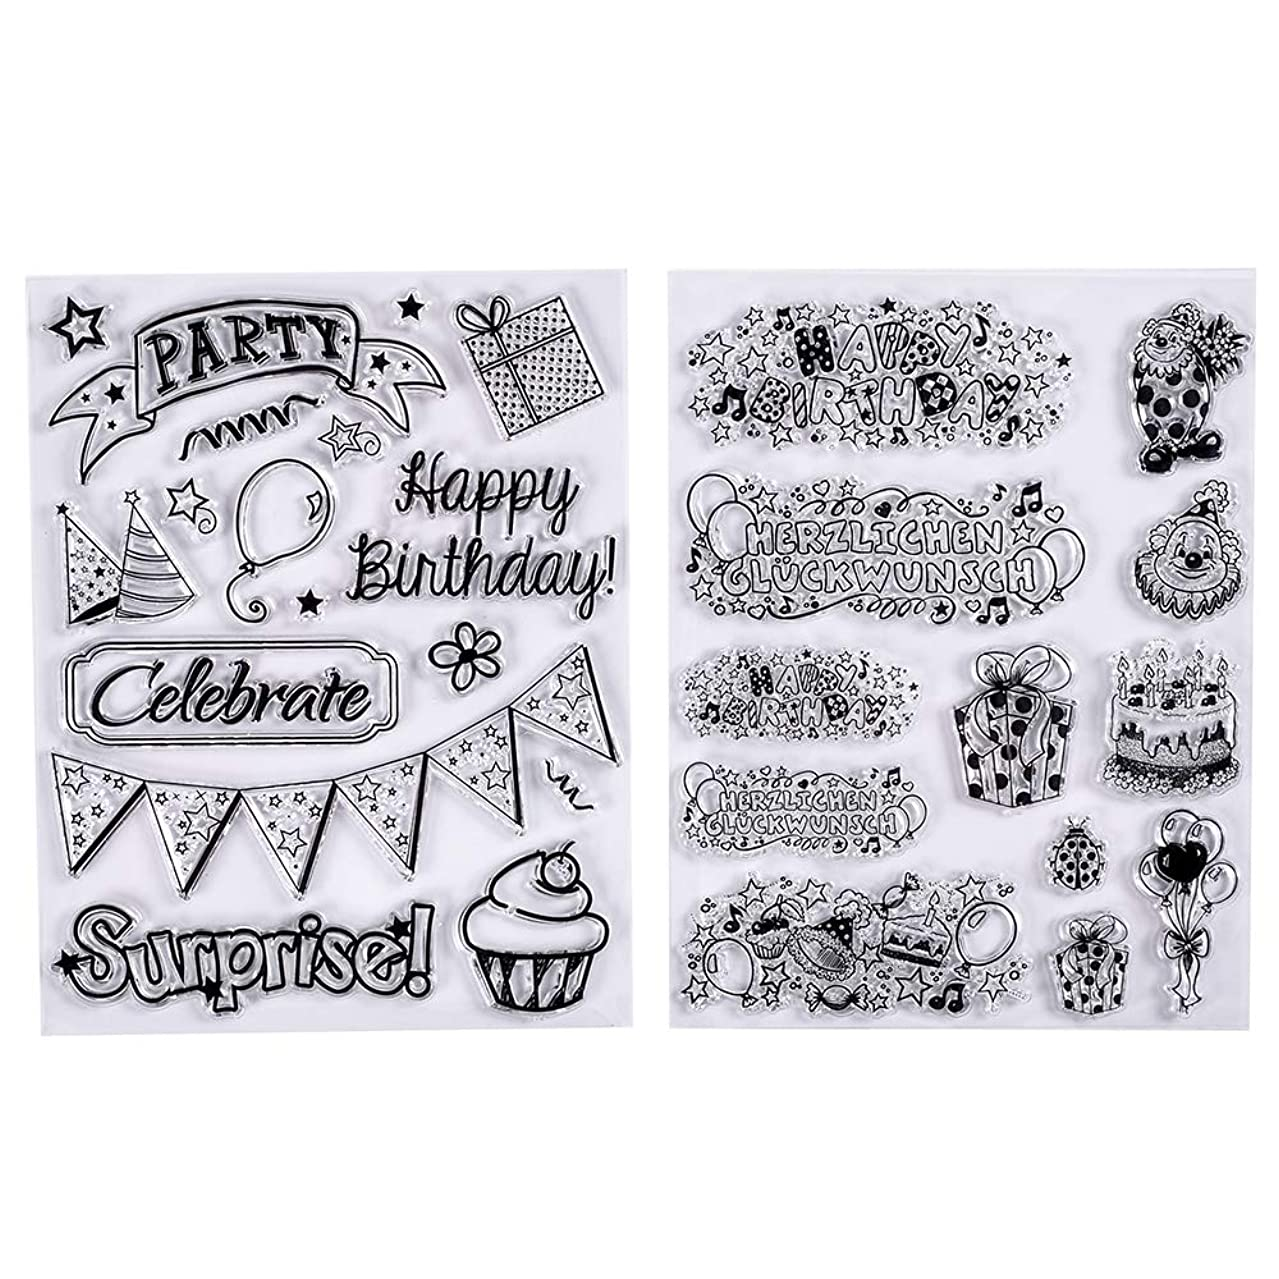 MaGuo Happy Birthday Theme Clear Stamps with Birthday Blessing Cakes Gift Balloon Flags,ect.